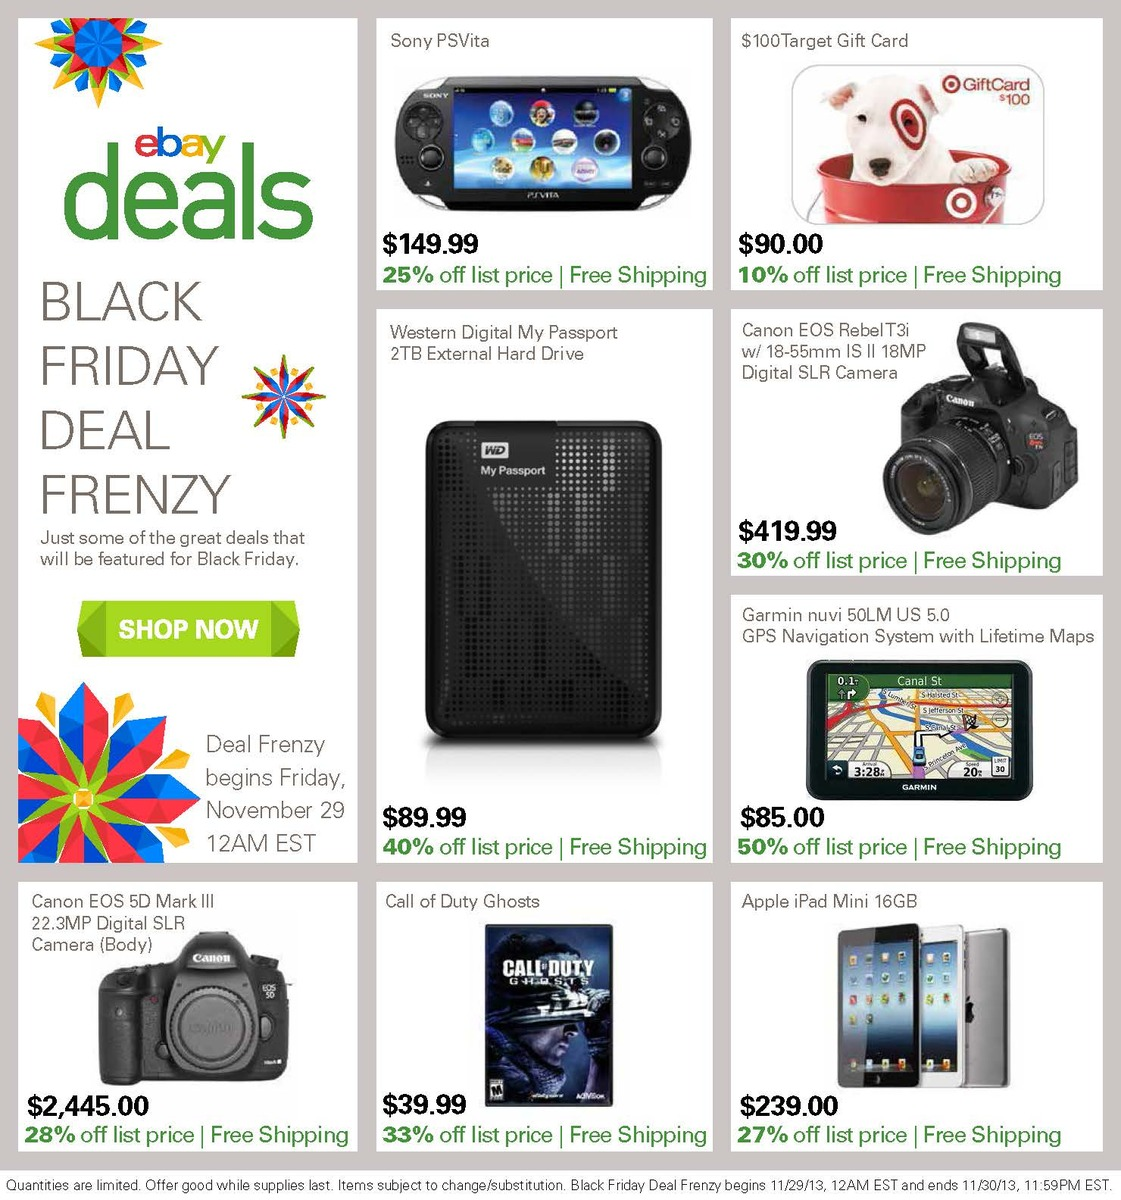 Black Friday 2013: eBay Deals Still In Stock – Beats, iTun